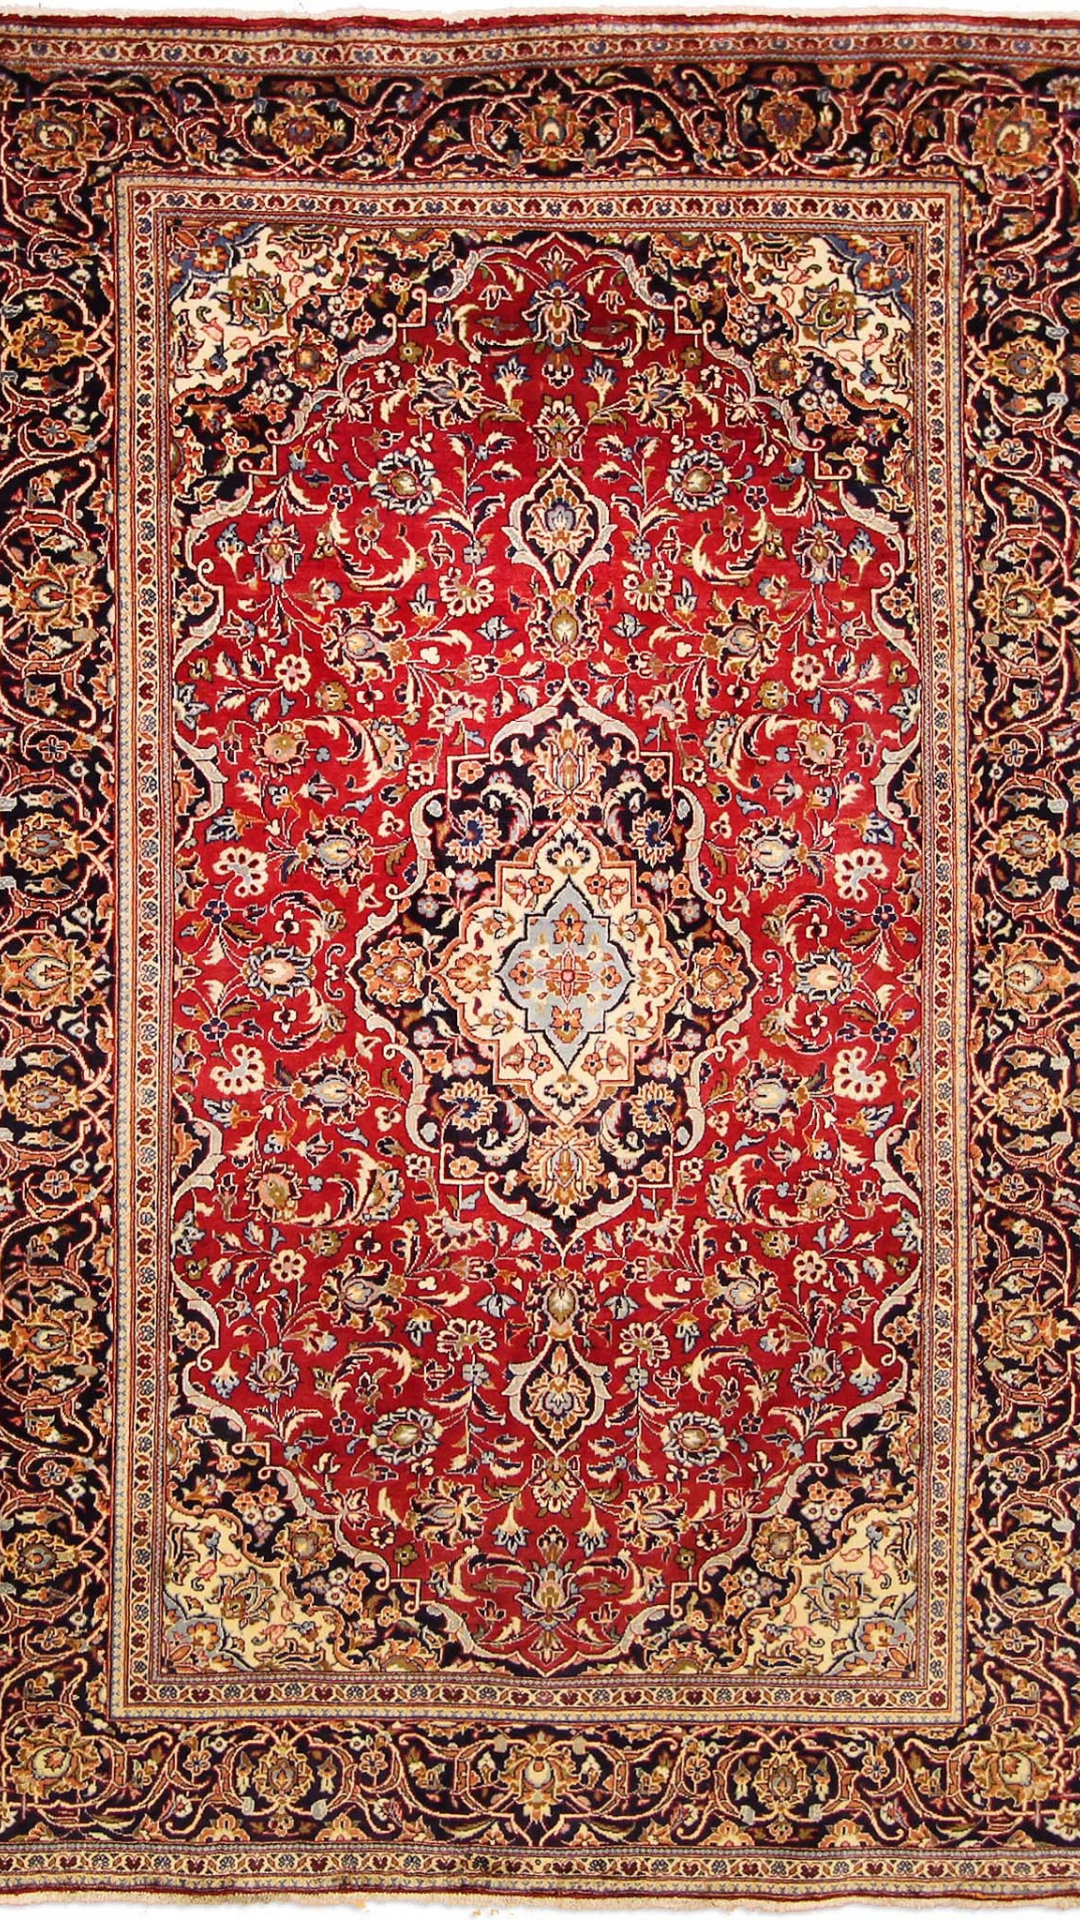 Free Download An Authentic Persian Rug Is A Handmade Carpet That Is Either Knotted 1356x2048 For Your Desktop Mobile Tablet Explore 49 Oriental Rug Wallpaper Oriental Rug Wallpaper Oriental